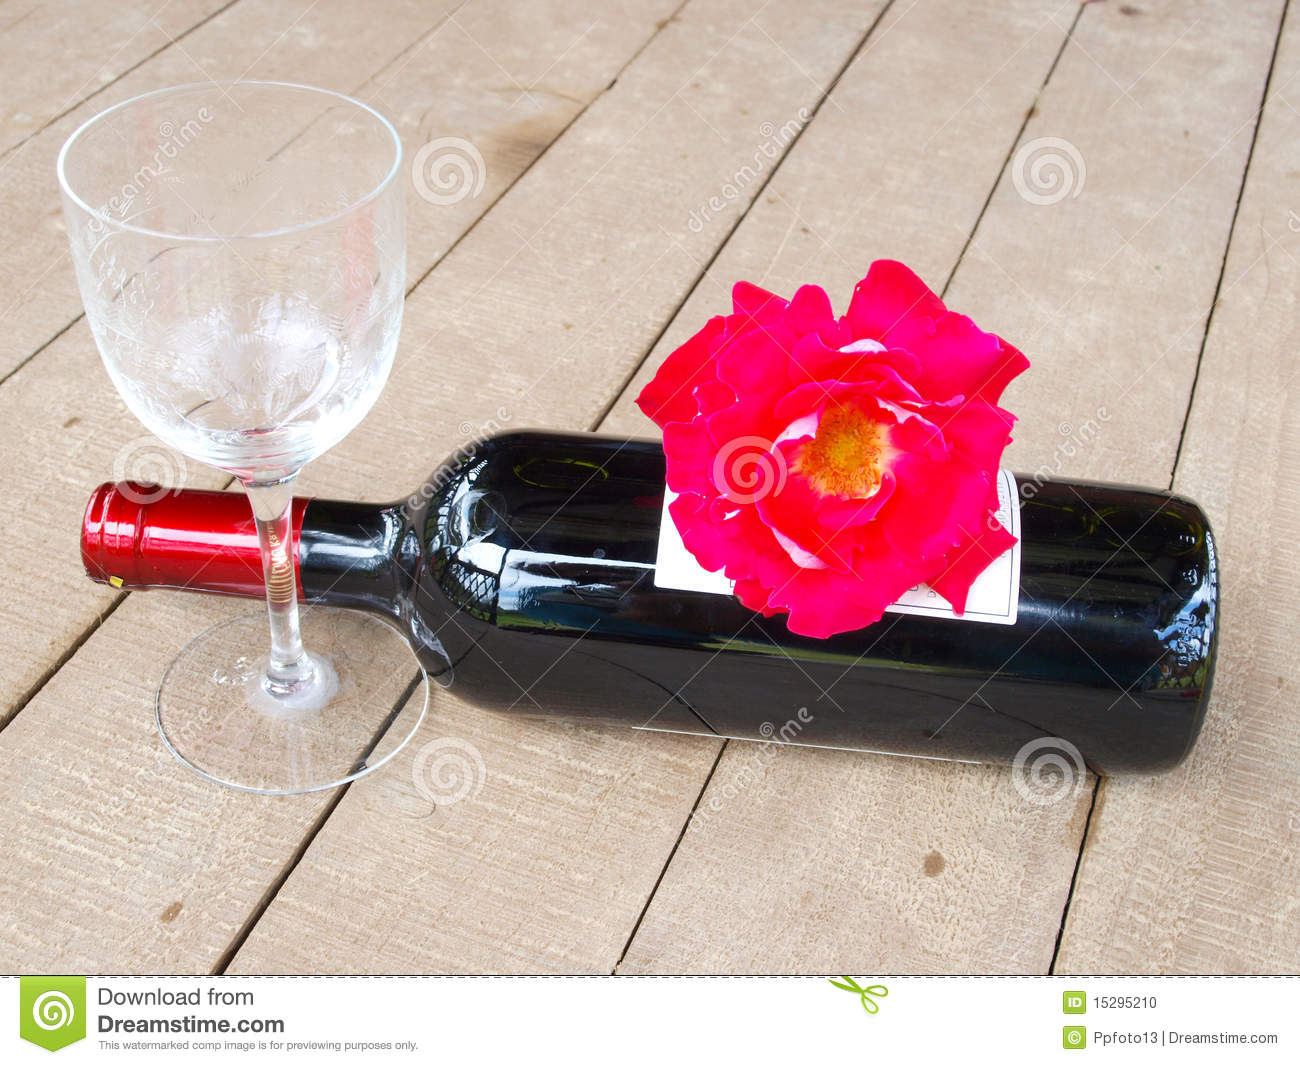 Red roses and red wine